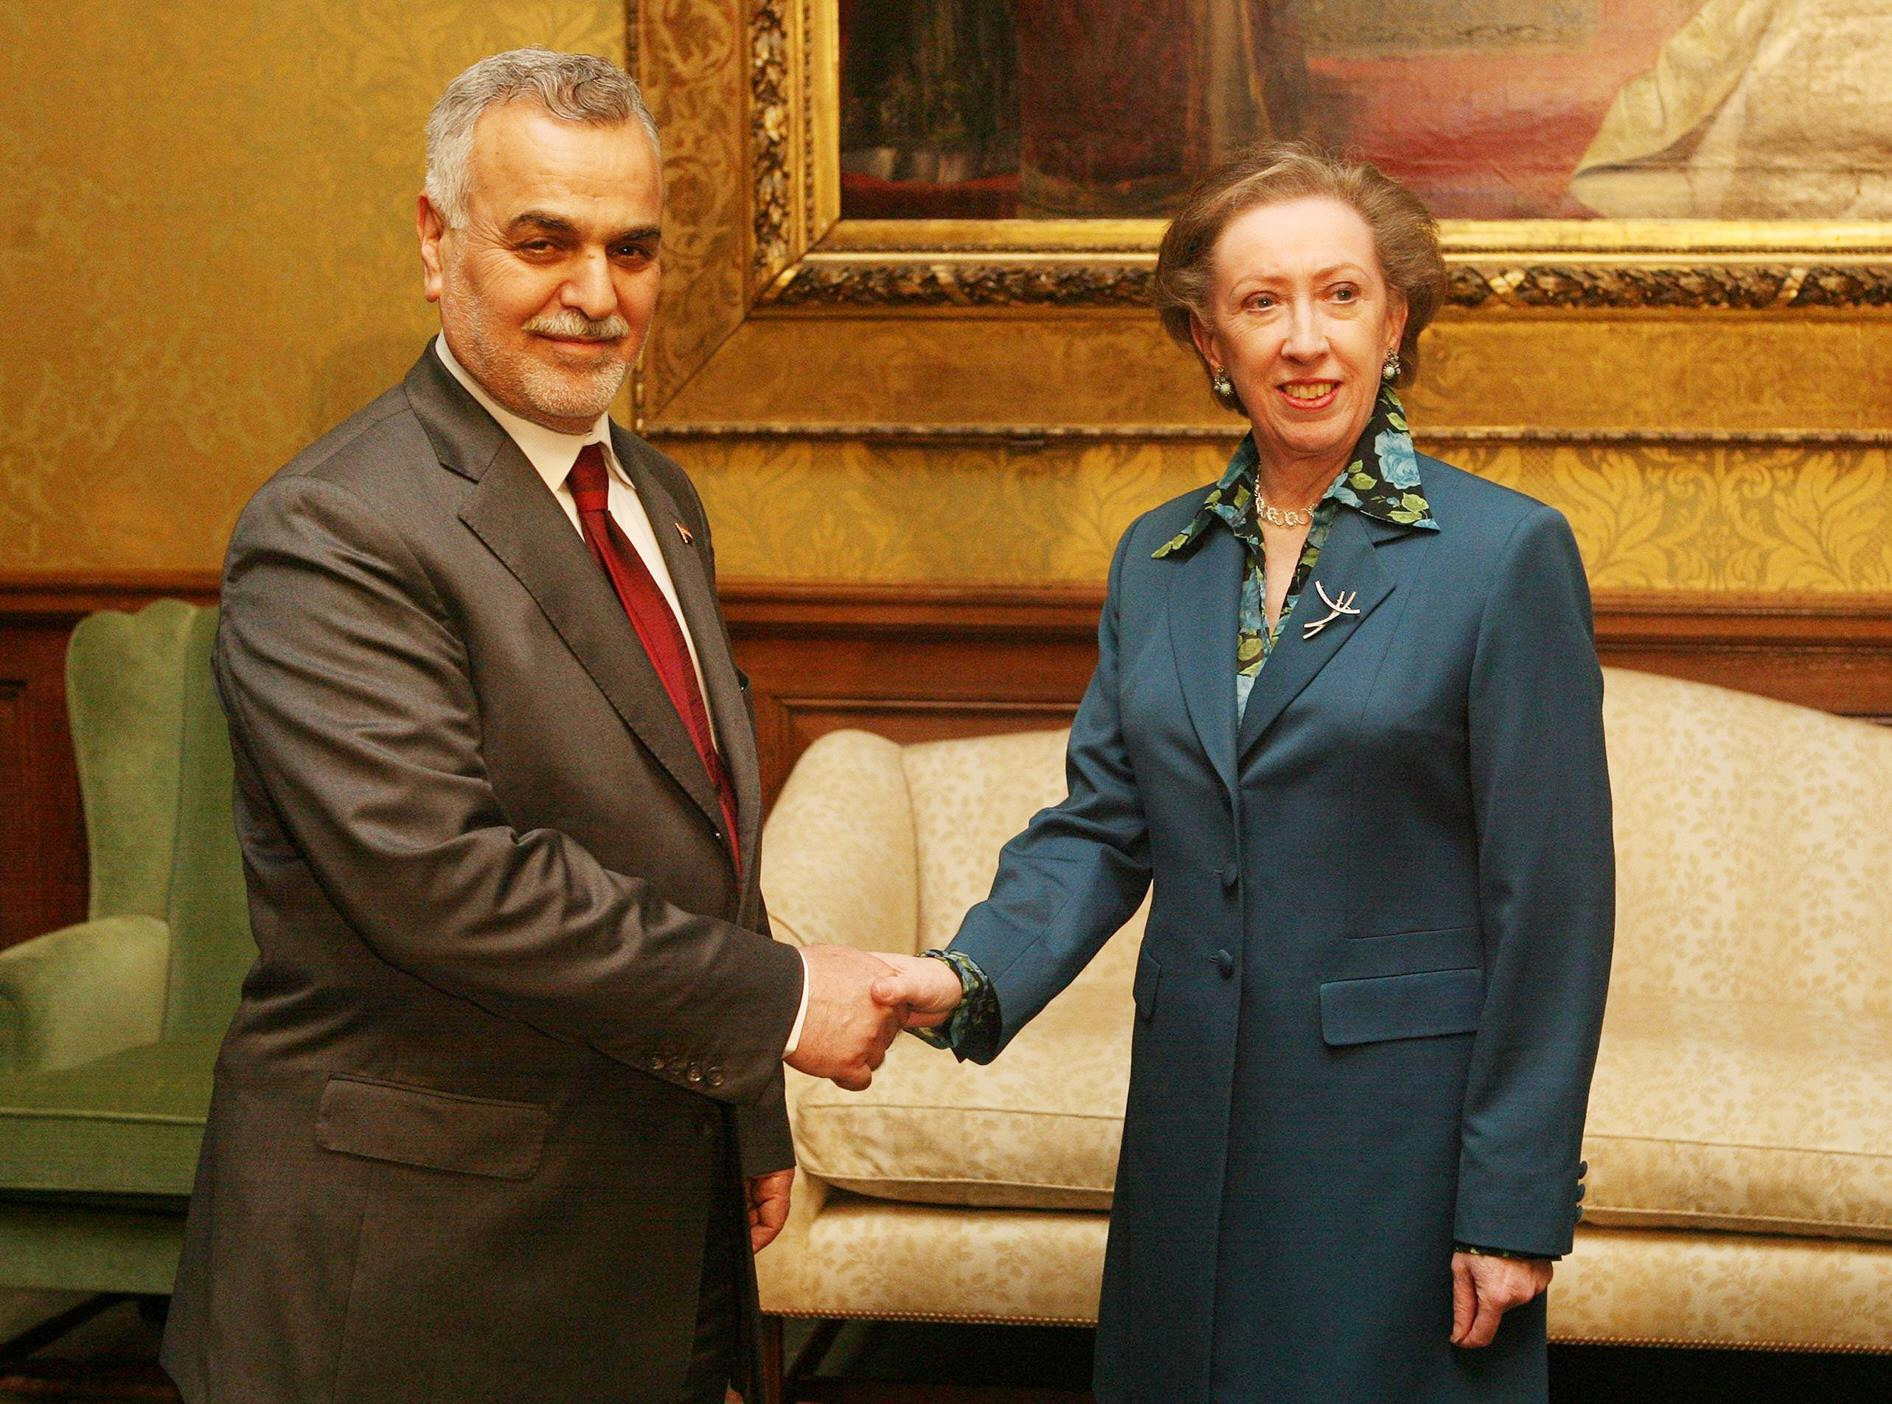 Beckett shaking hands with the then-Vice President of Iraq